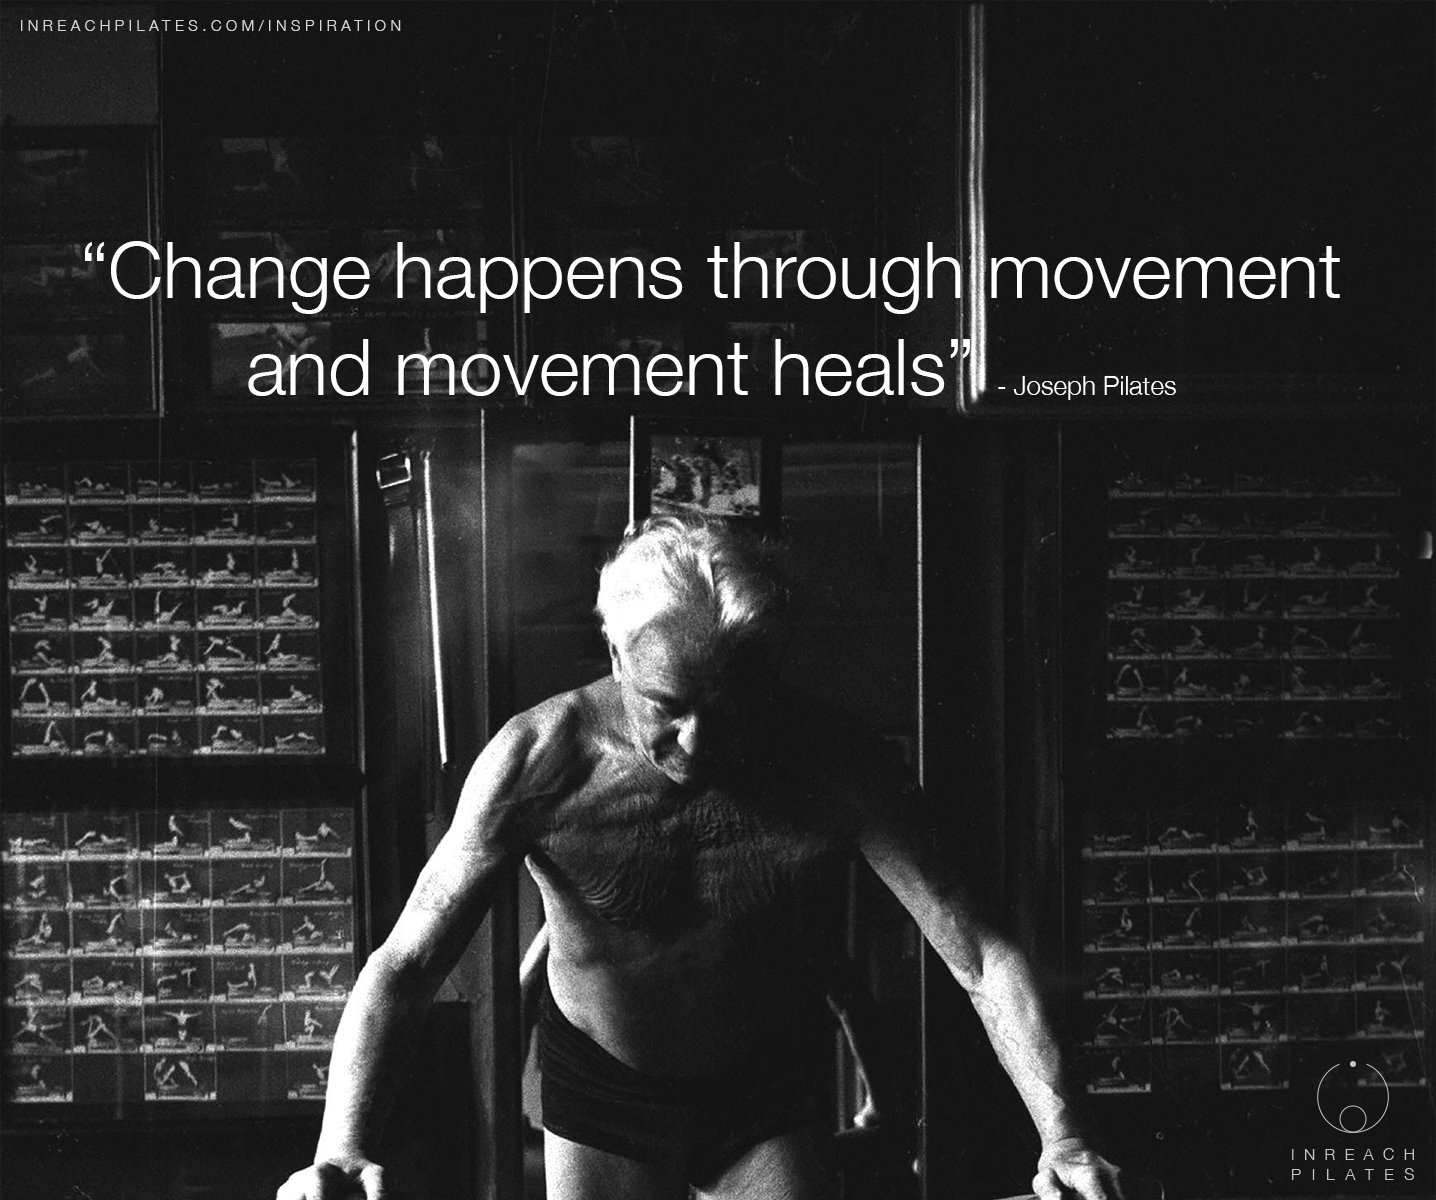 Change happens through movement - Joseph Pilates